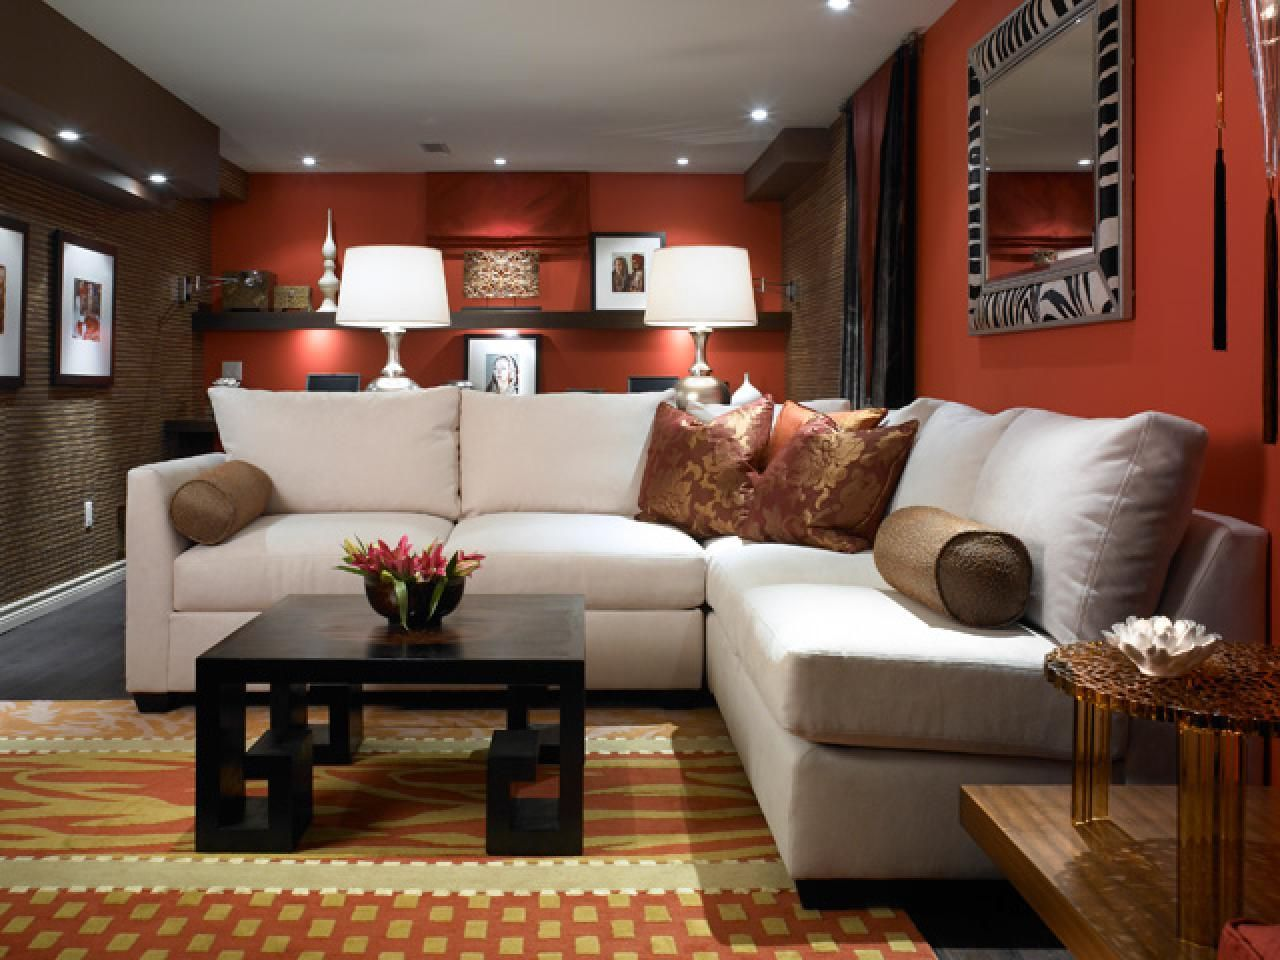 Basement Living Room Designs Mesmerizing Basement Makeover Ideas From Candice Olson  Basement Makeover Decorating Design